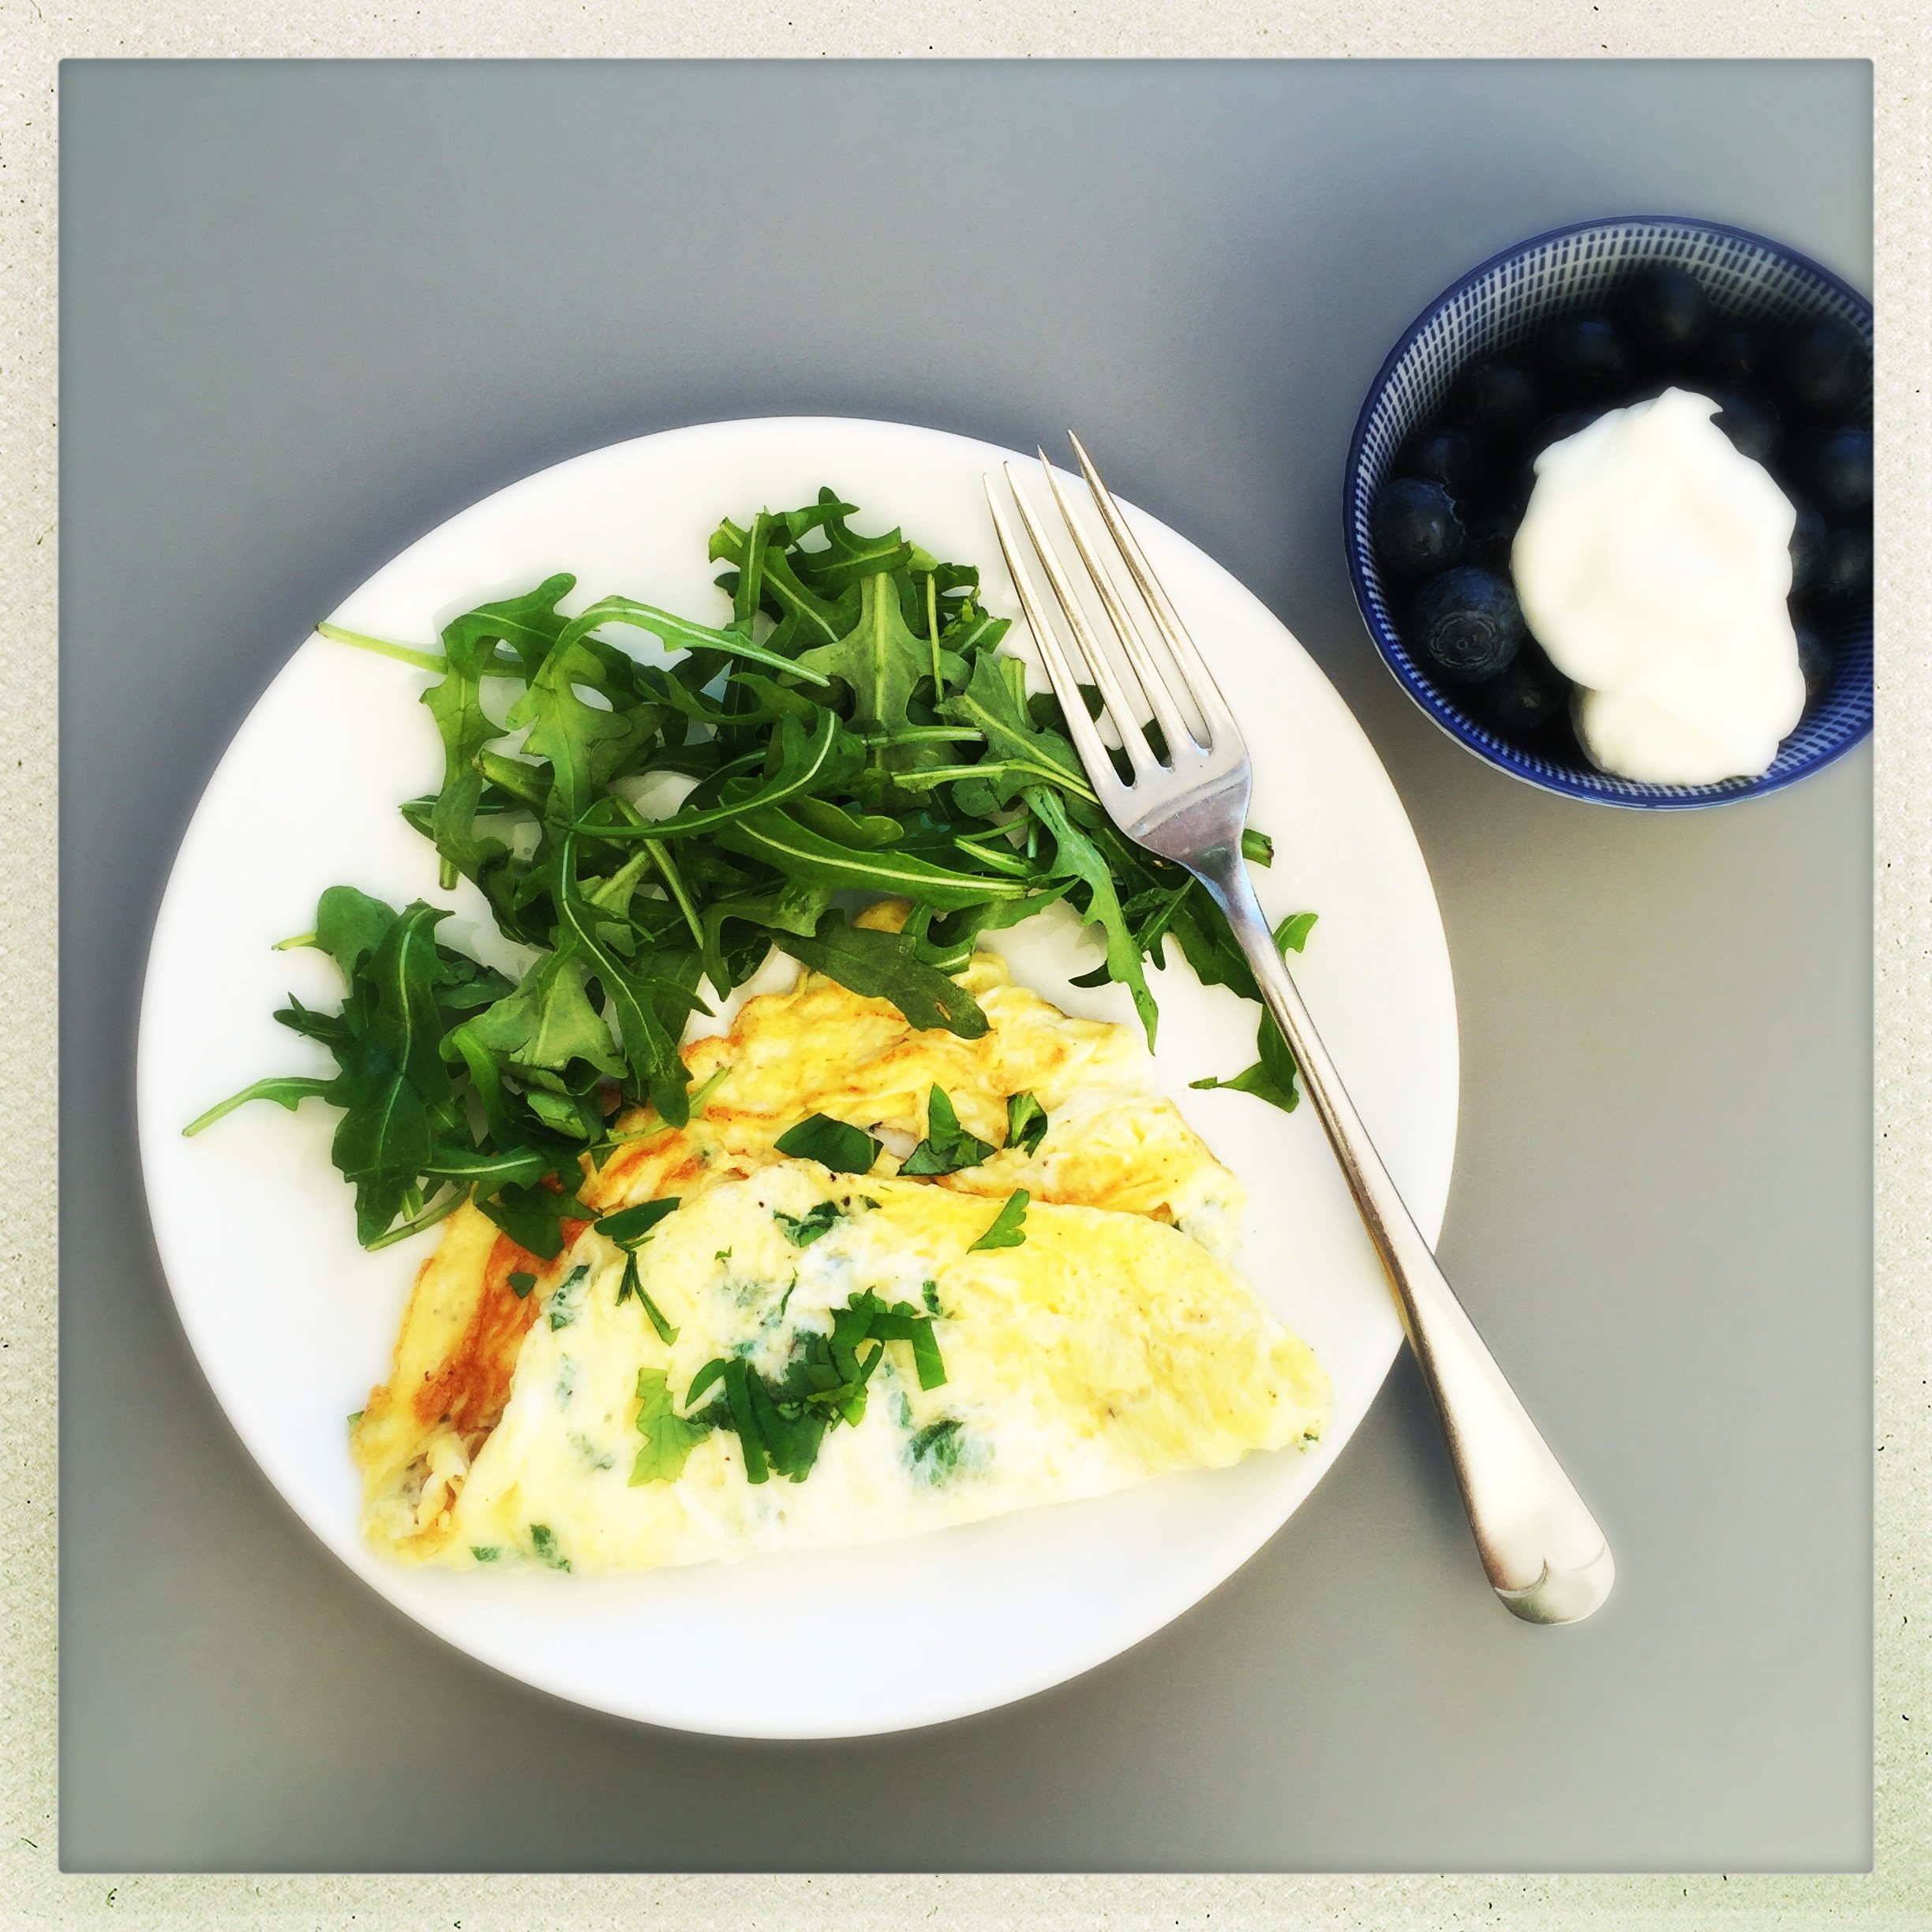 herby omelette with green salad - blueberries and yogurt in a bowl alongside